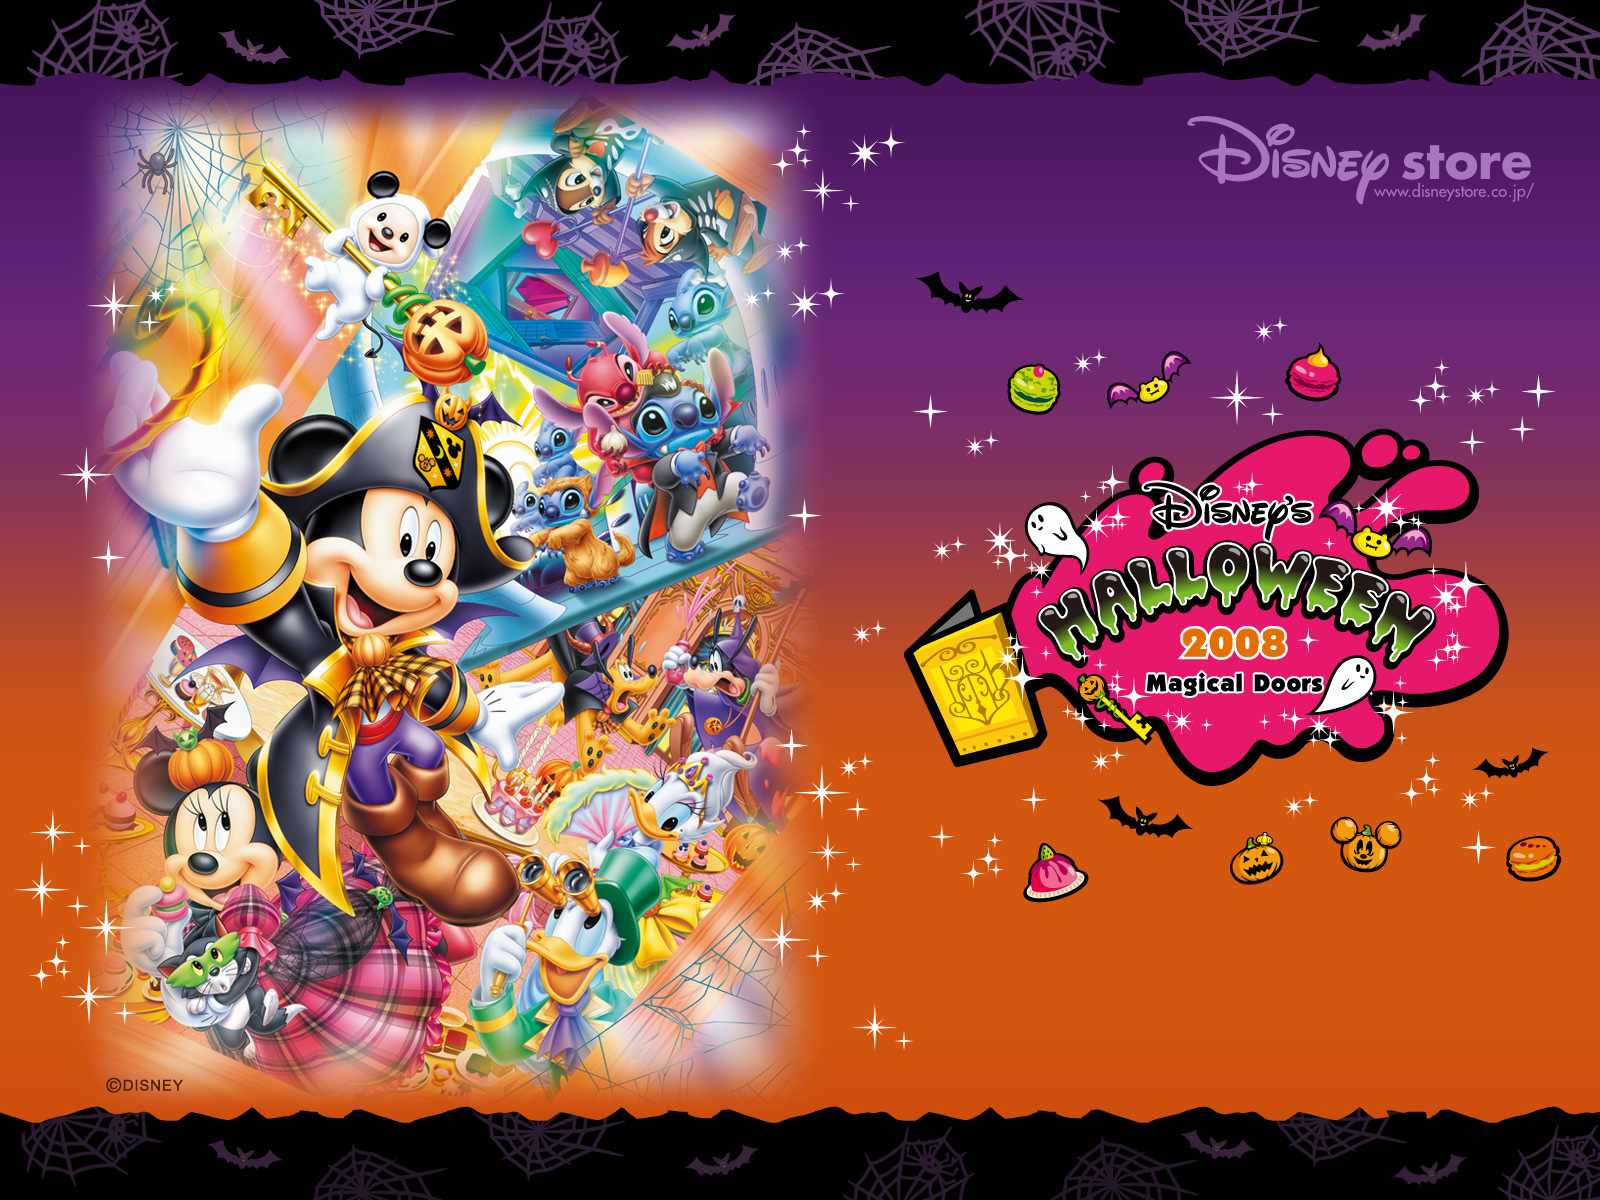 Disney Halloween Wallpaper Backgrounds - WallpaperSafari